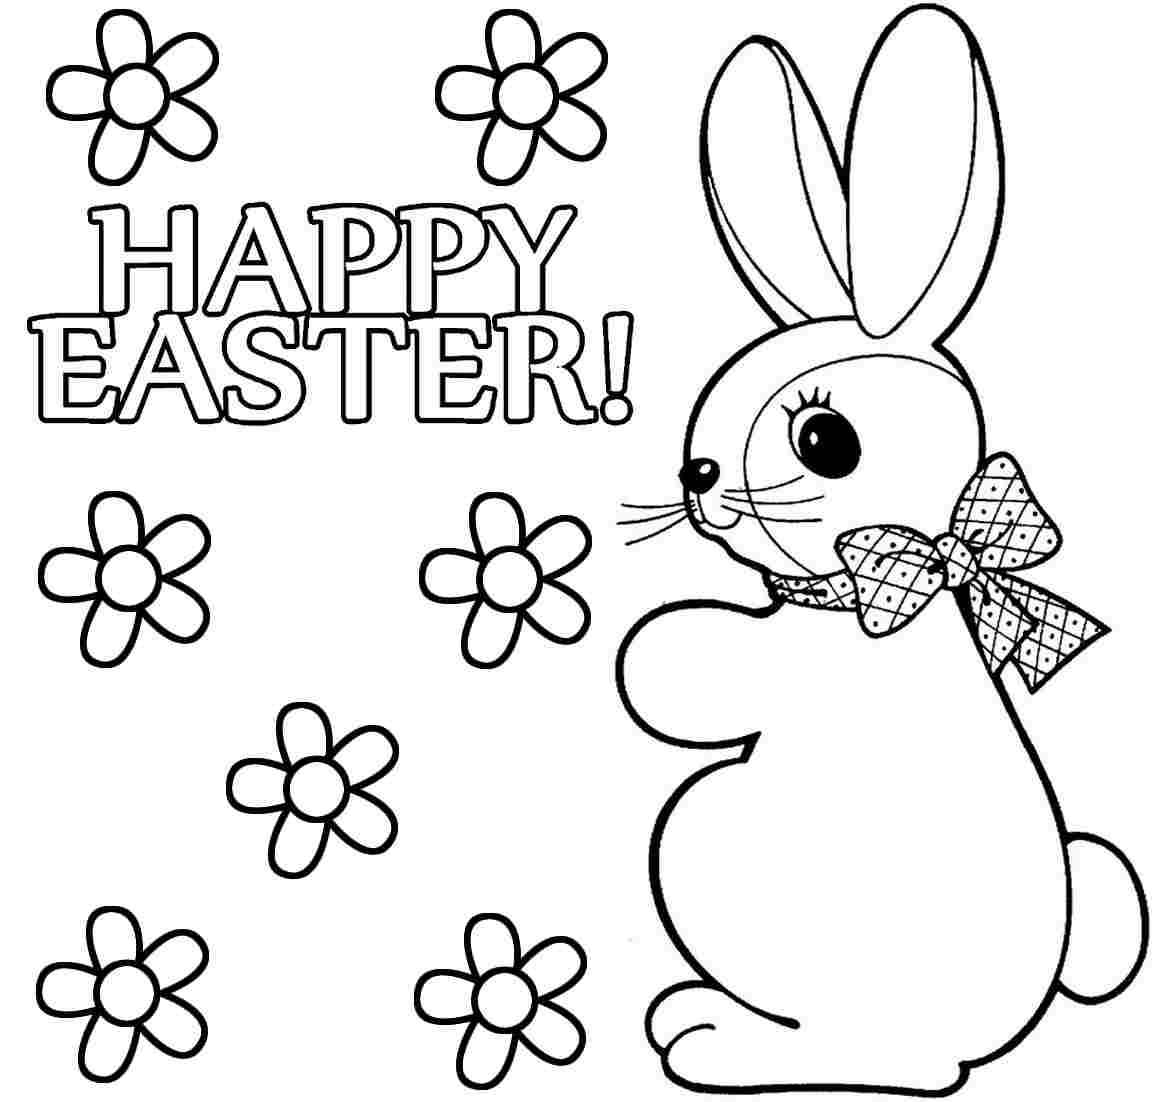 1152x1102 Simple Easter Bunny Coloring Page